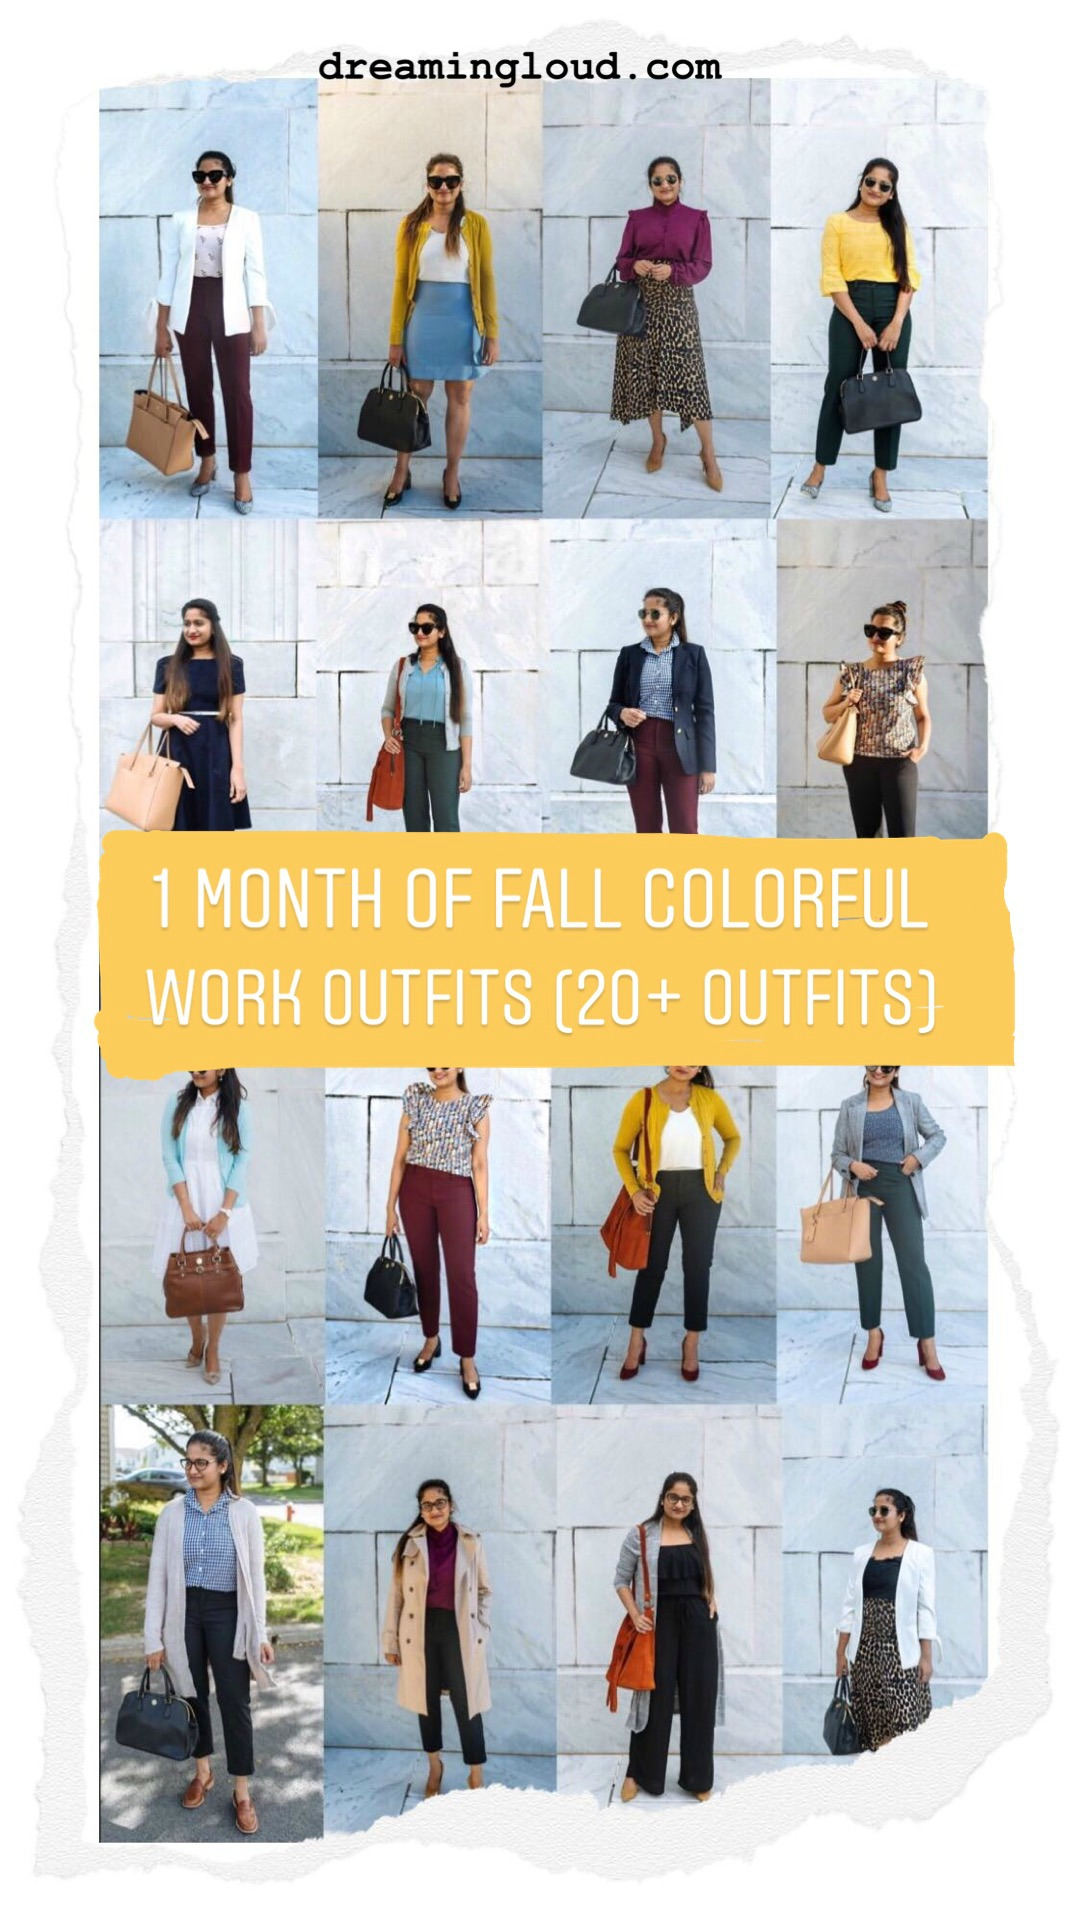 91be938b5 20 Outfit Fall colorful capsule wardrobe | Colorful Fall Work Outfits  featured by popular US modest